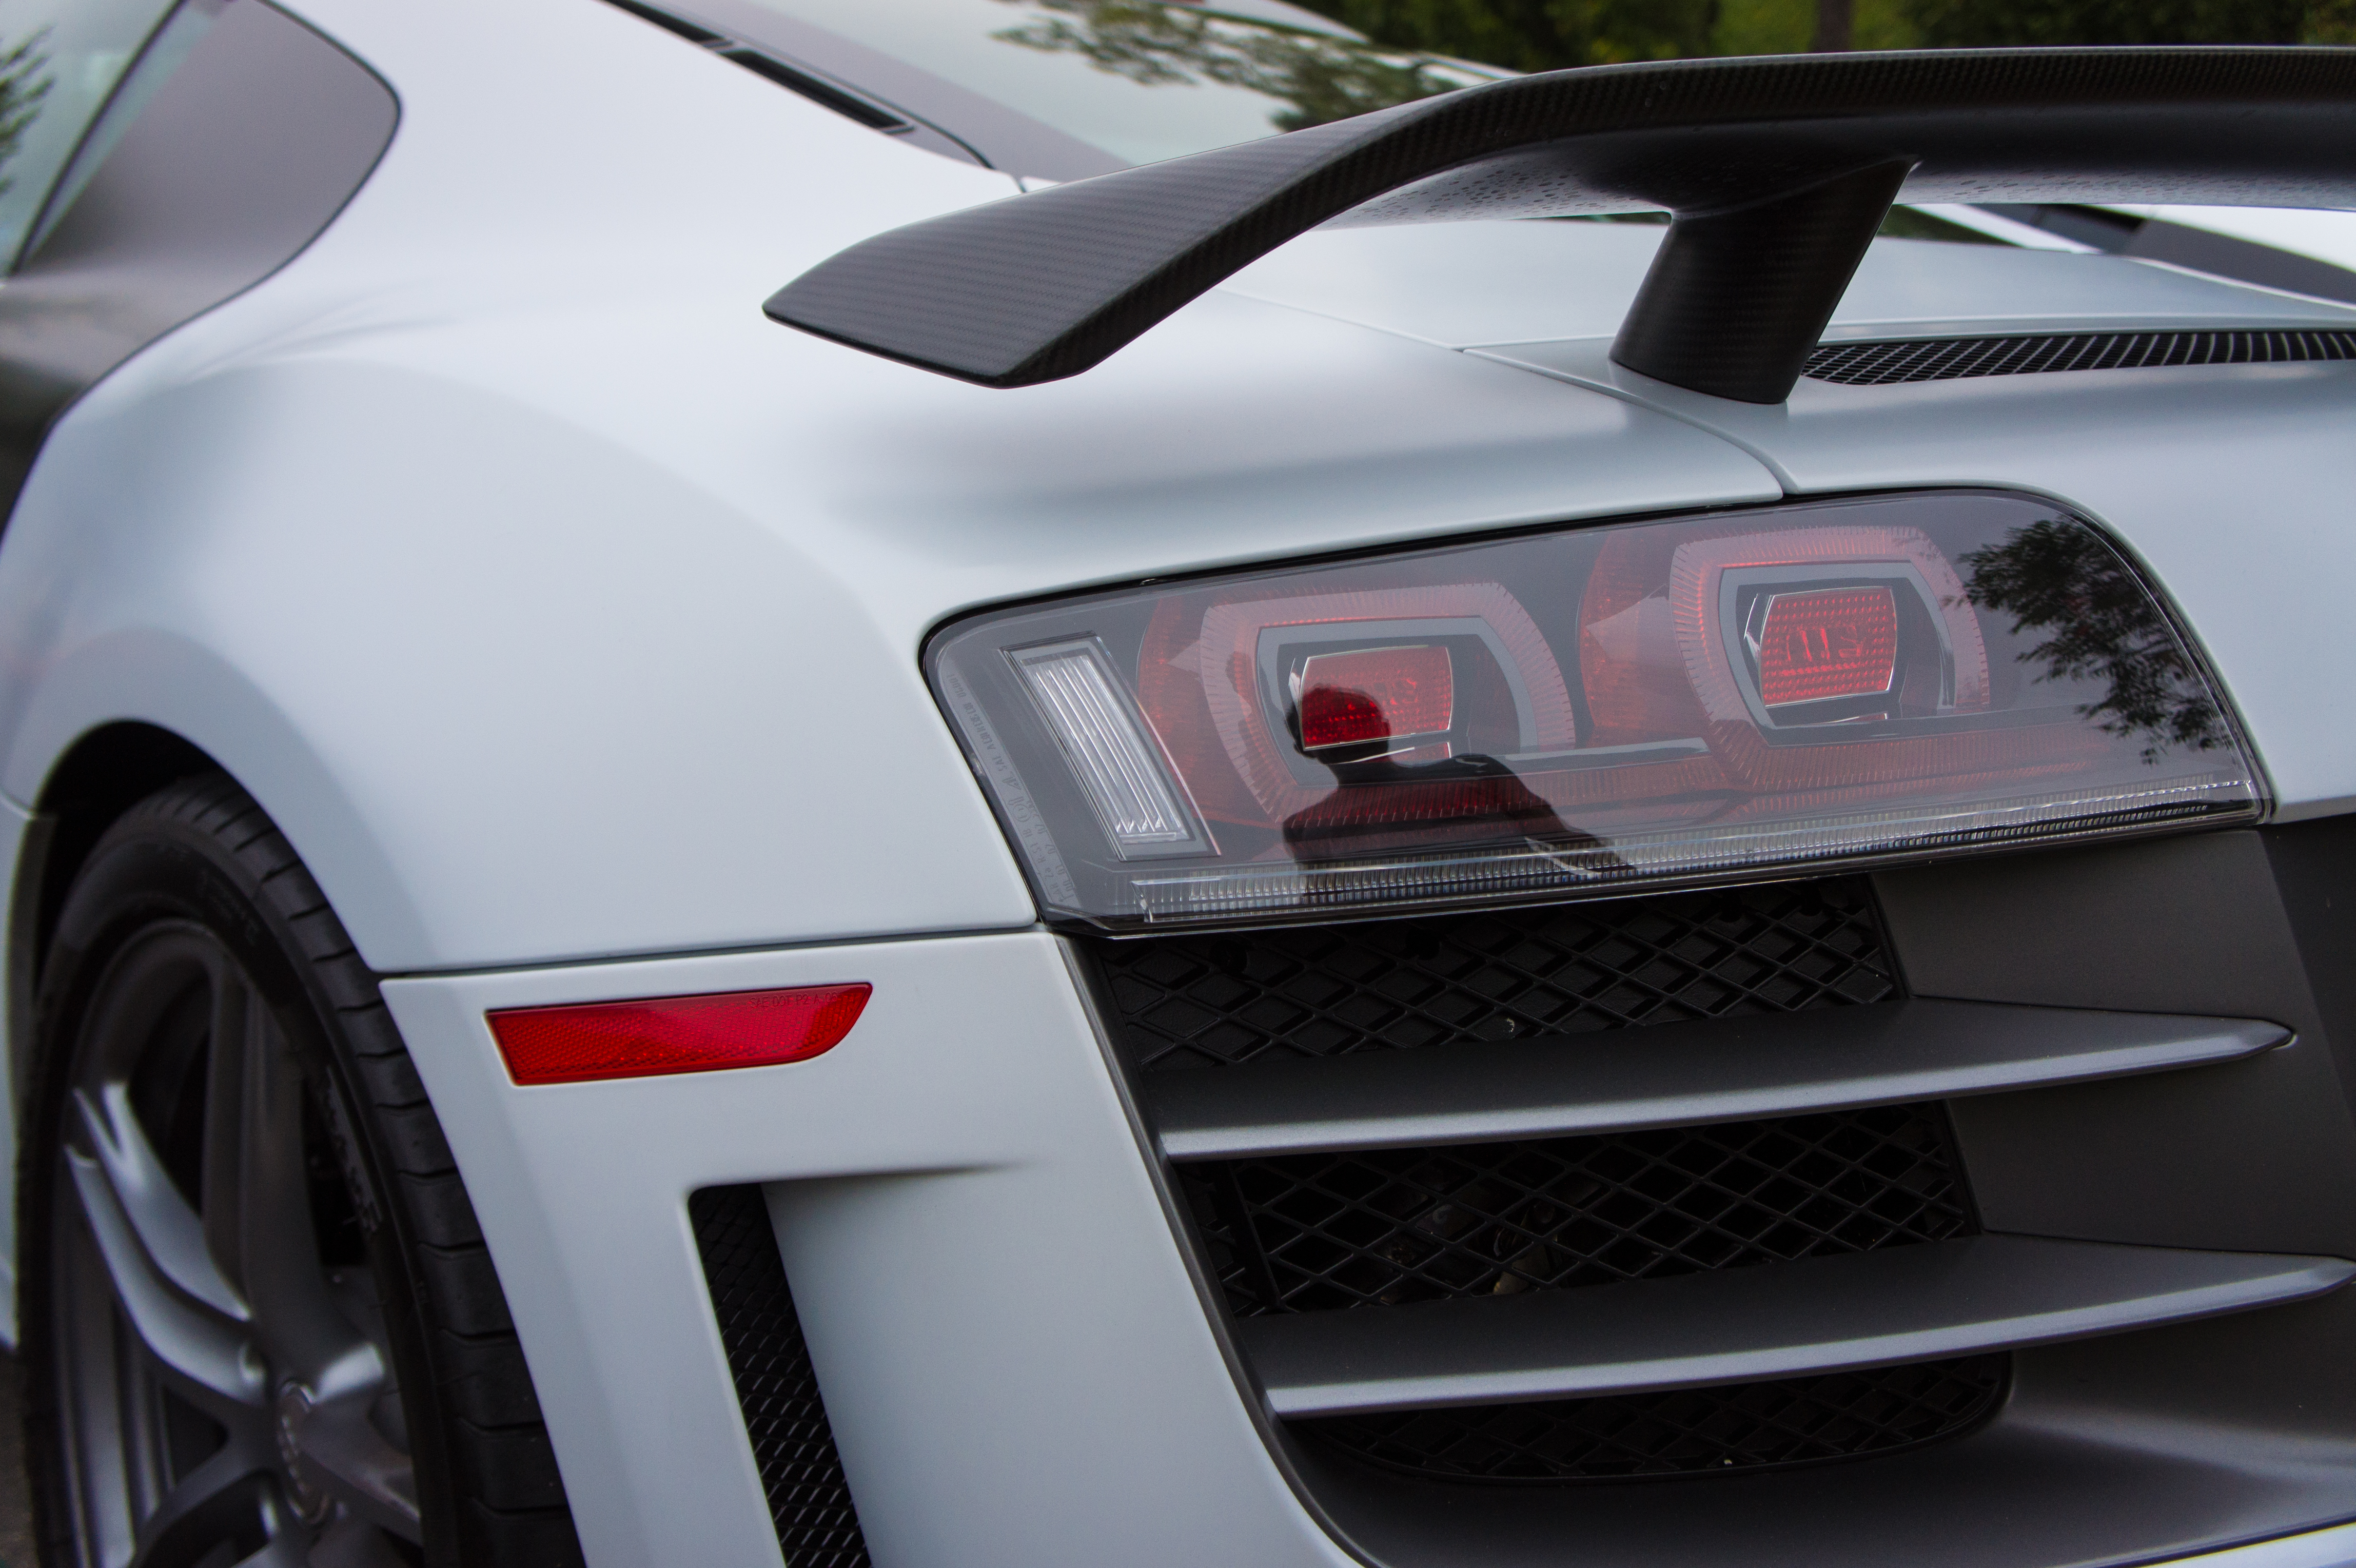 File R8 Gt Taillights 8208567871 Jpg Wikimedia Commons